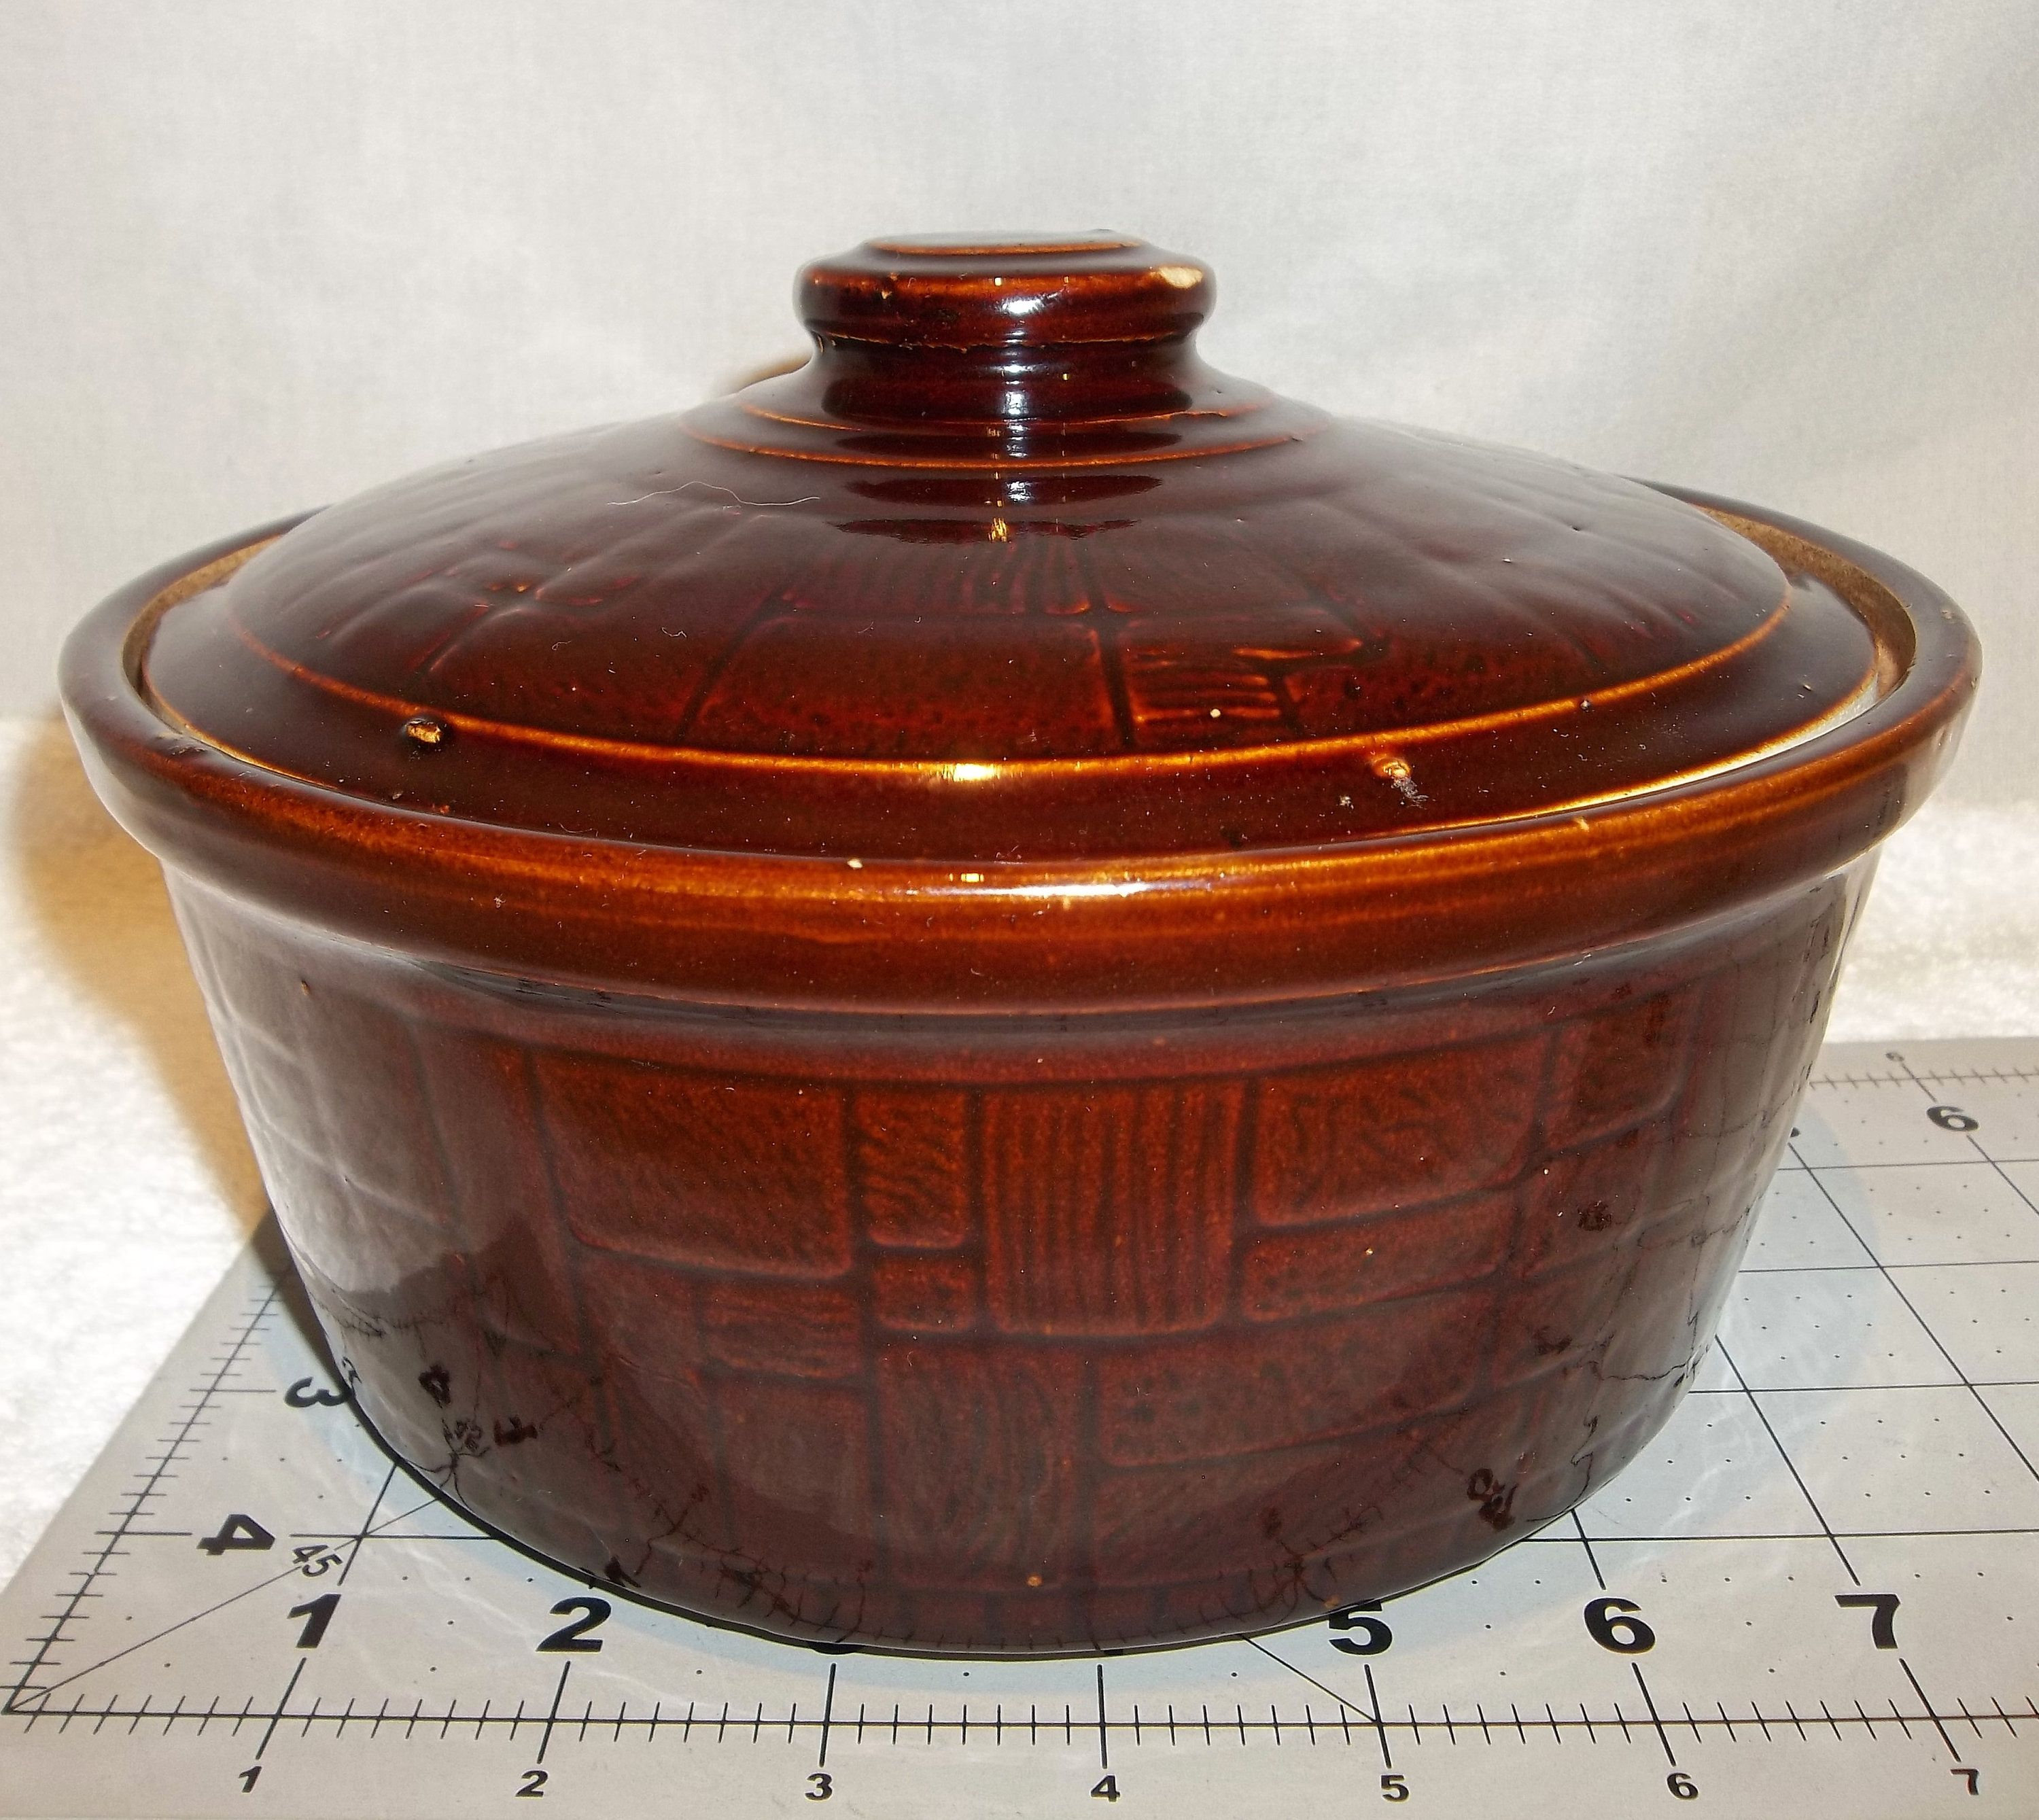 Antique Mccoy Pottery Brown Basket Weave Pattern Casserole Dish Baked Bean Pot With Lid Glazed Baking Dish Dutch Oven Ke Baked Dishes Bean Pot Casserole Dishes